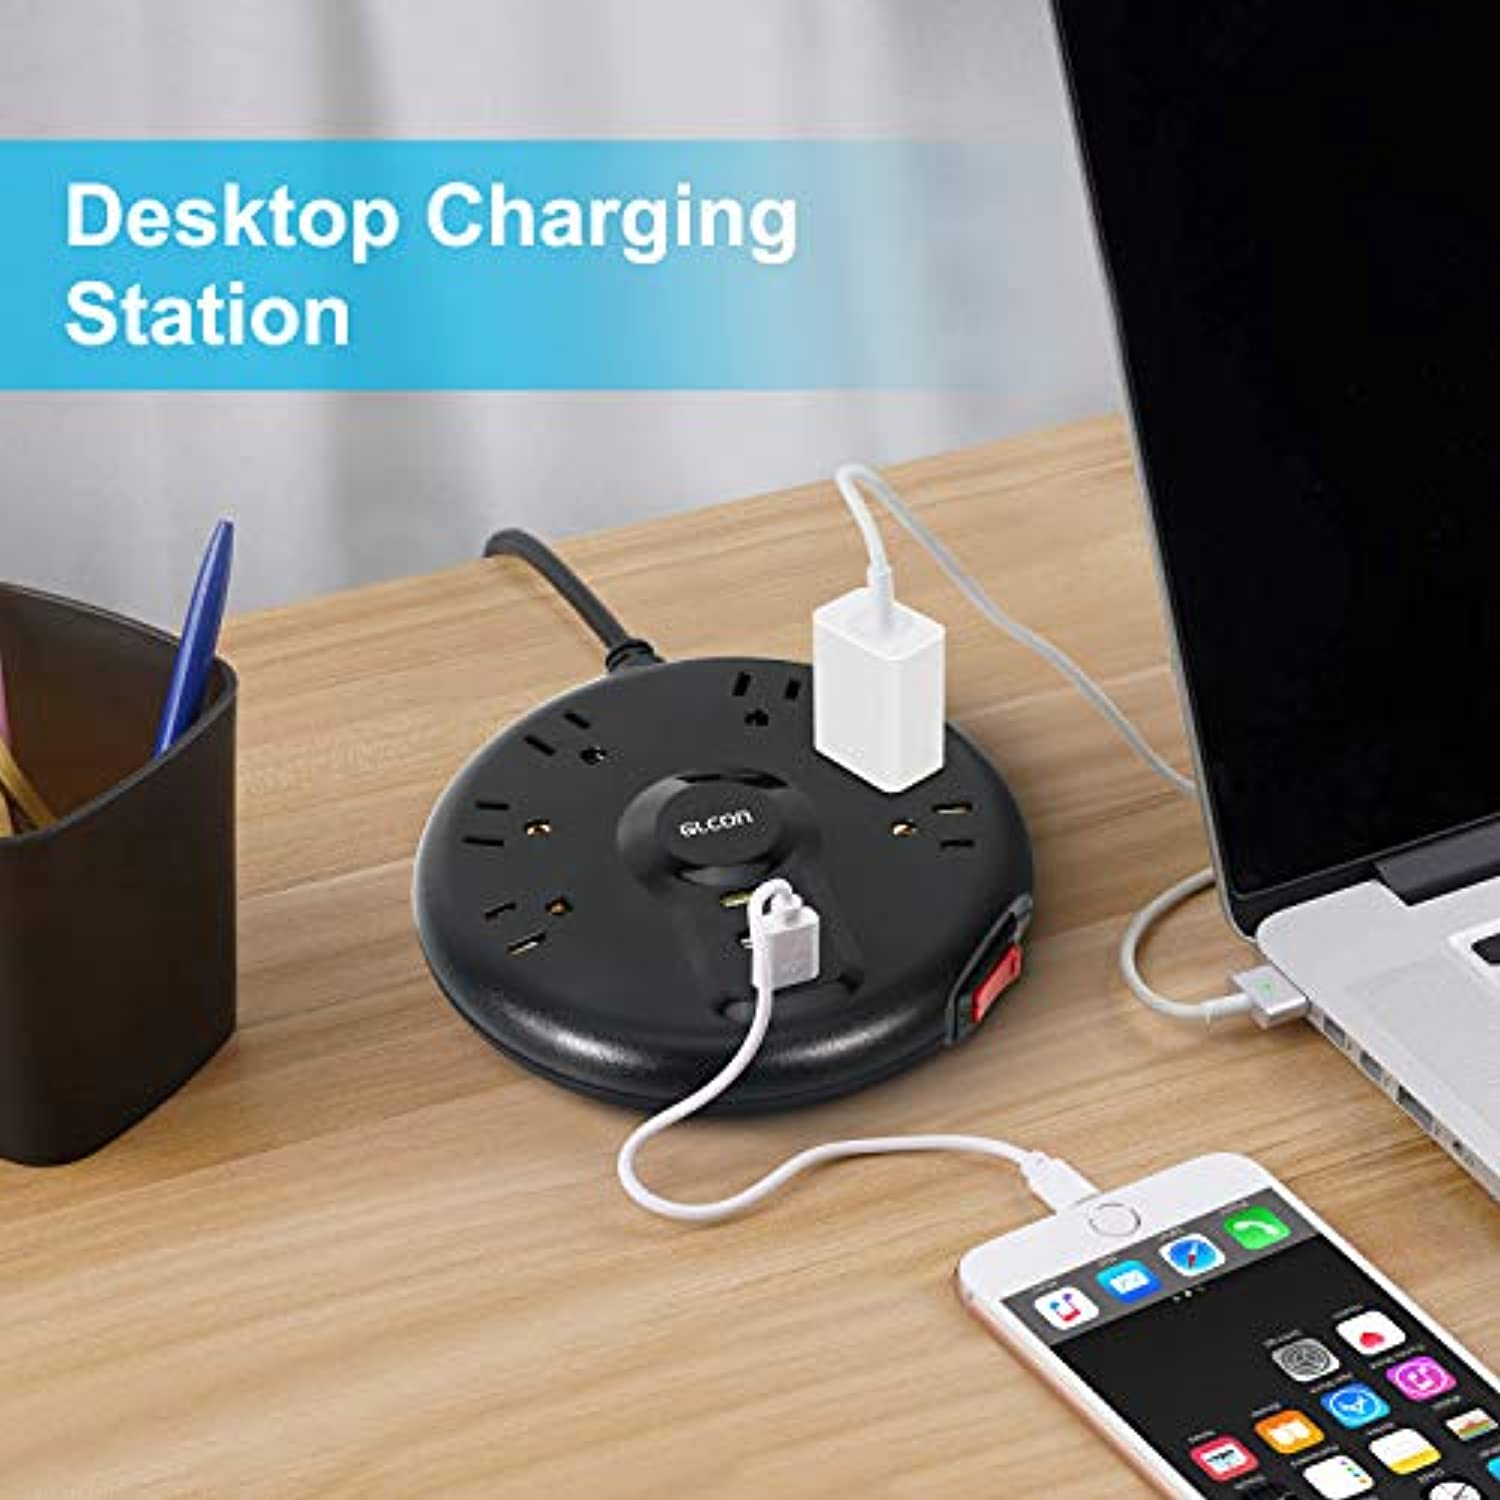 Classier: Buy GLCON Power Strip with USB – Multi Outlets Flat Plugs Surge Protector with 6 Outlets 3 USB Ports Long Extension Cord – Desktop Charging Station Smart Power Outlet